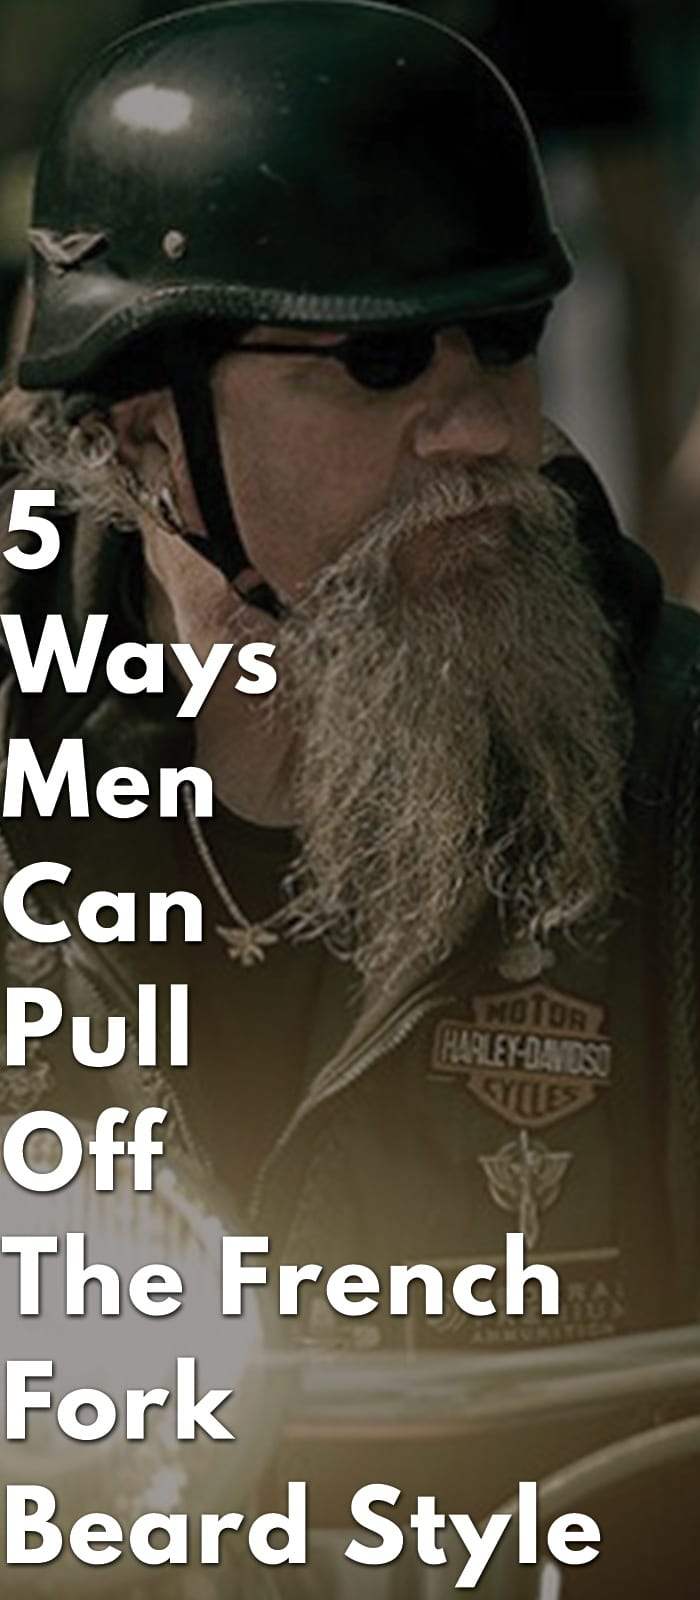 5-Ways-Men-Can-Pull-Off-The-French-Fork-Beard-Style